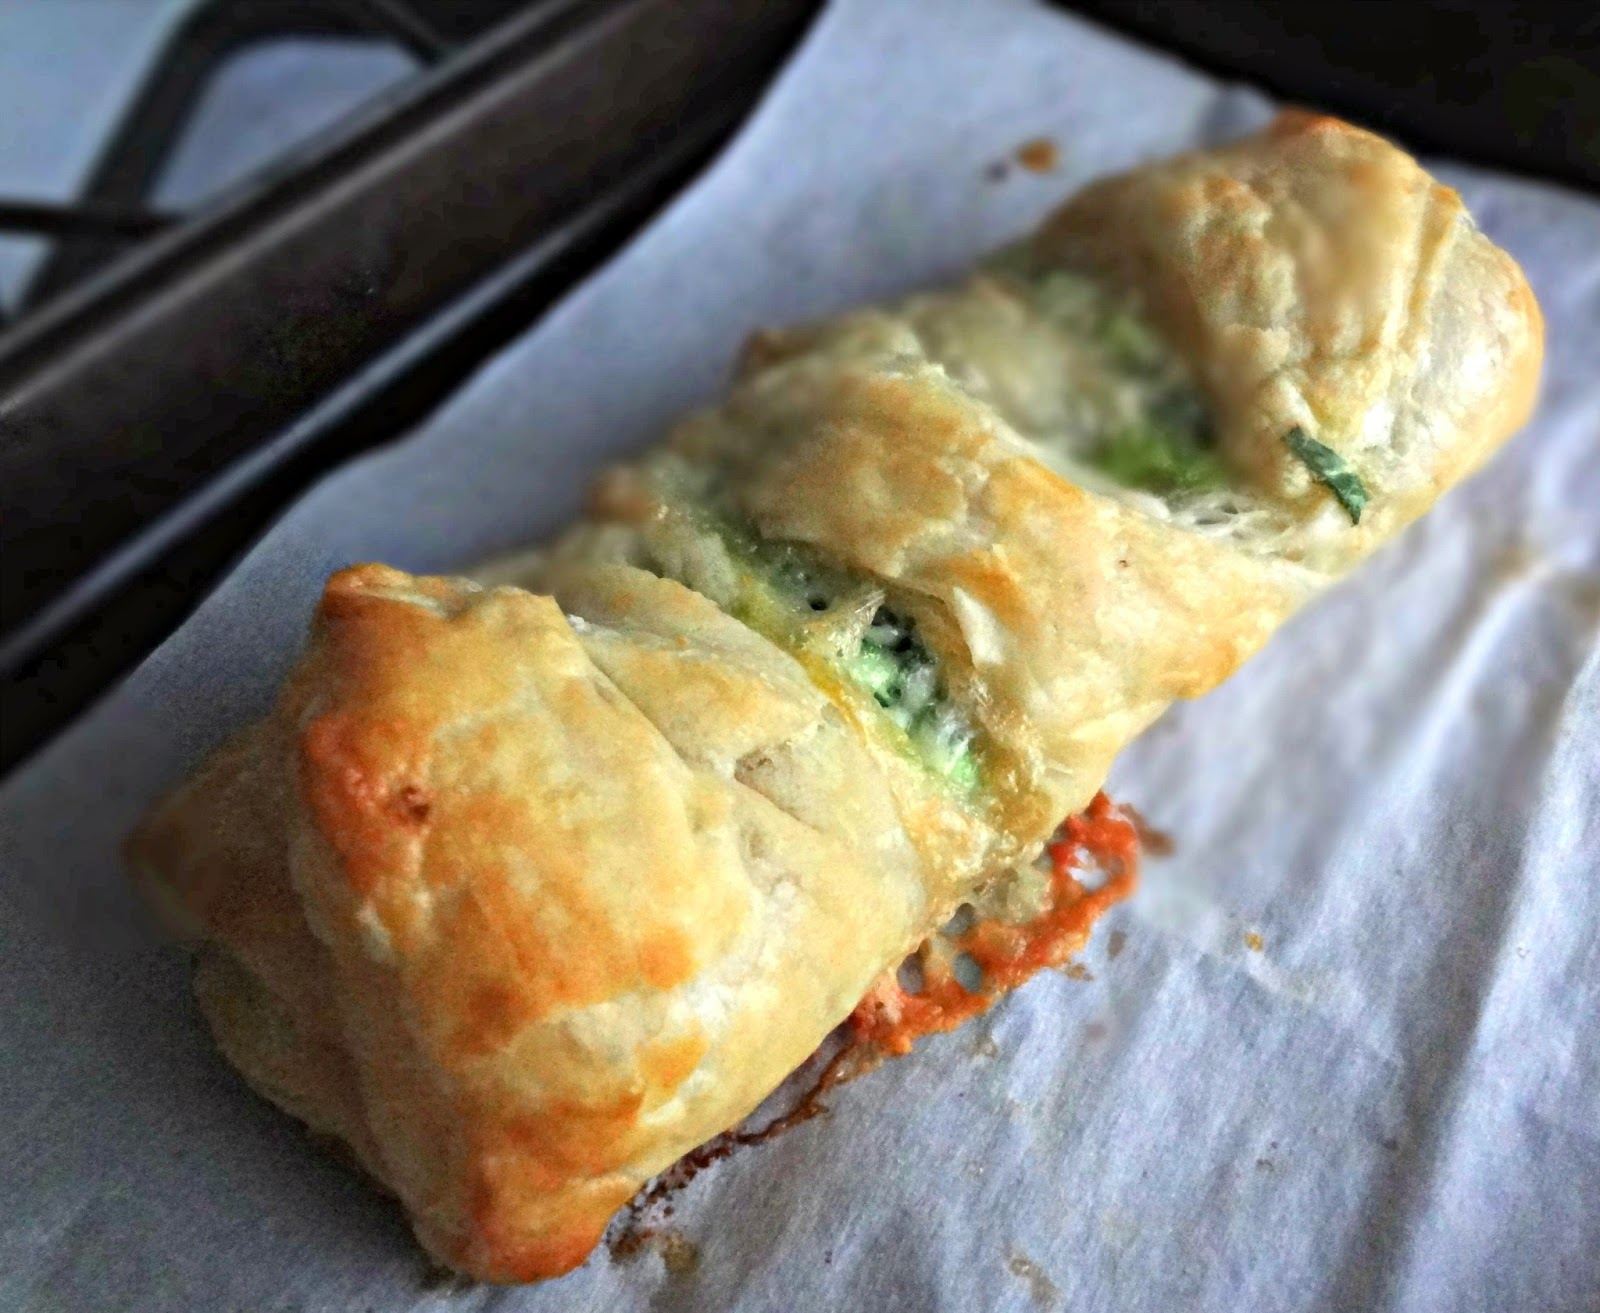 The Cooking Act... Meat Spinach Cheese Pastry